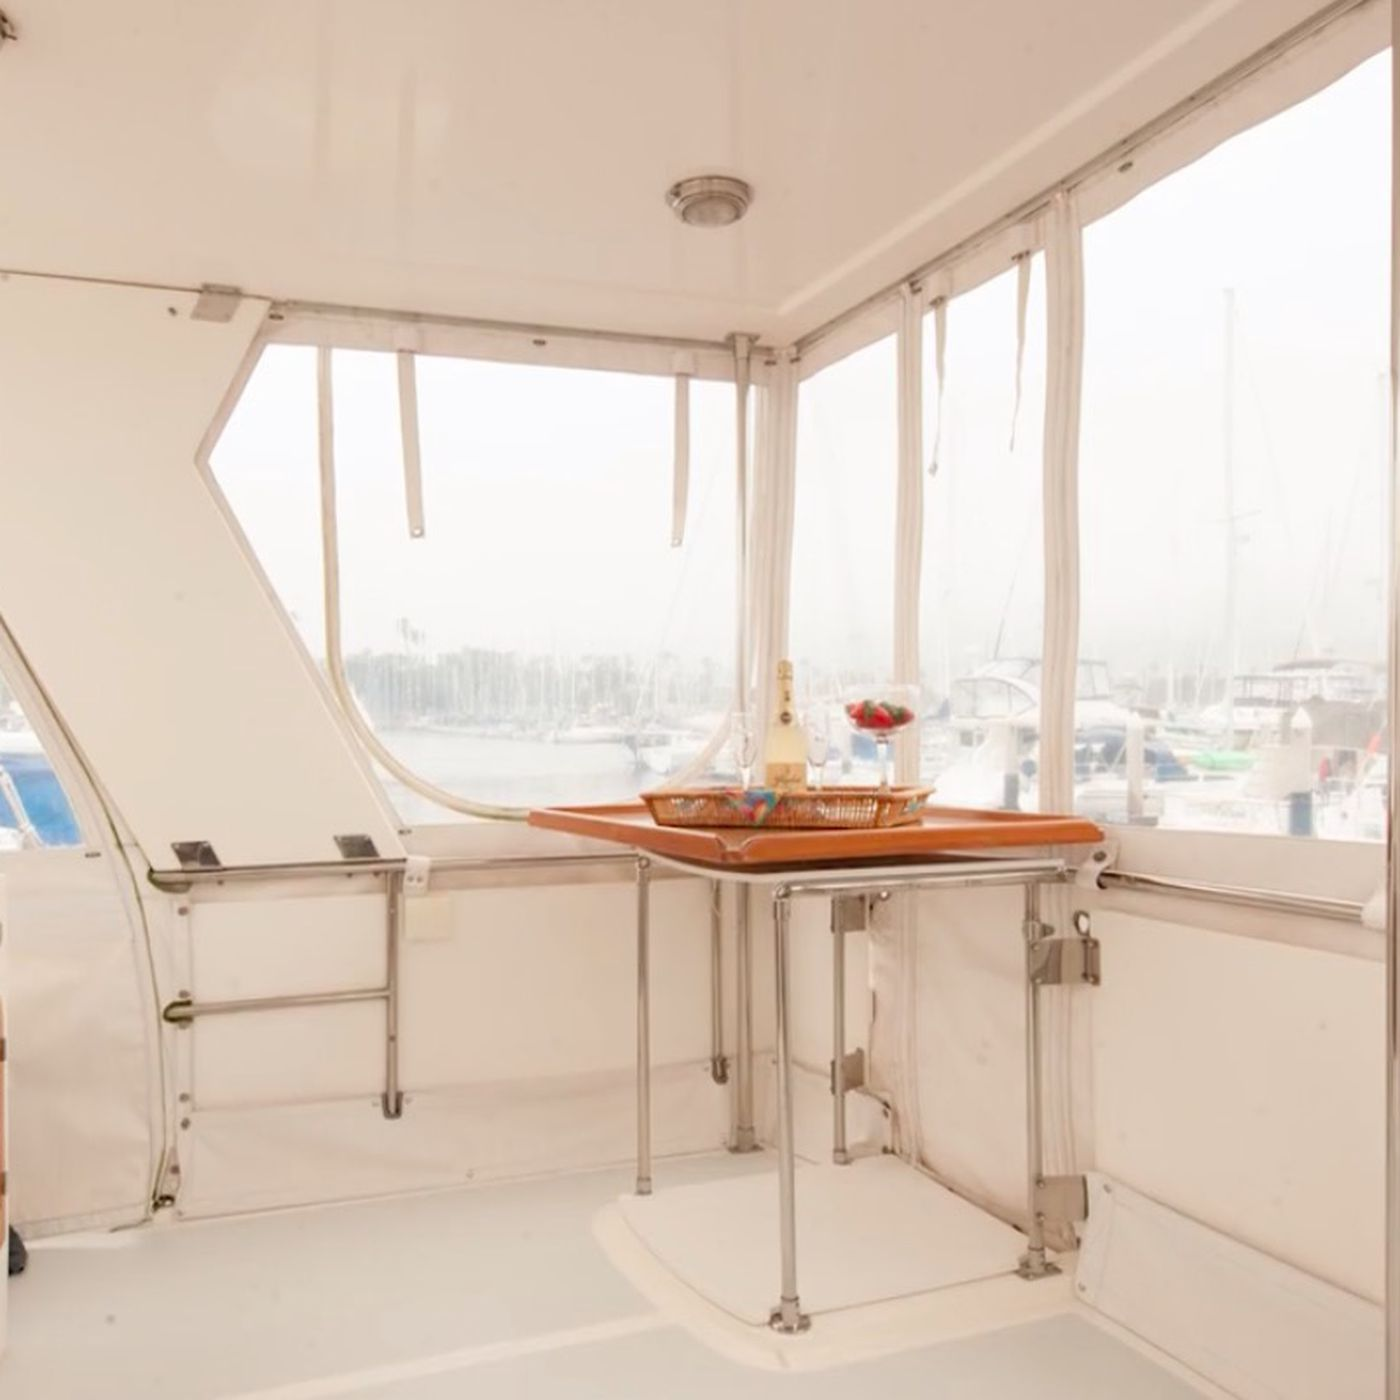 Los Angeles houseboat comparison: A look at the vessels now on the